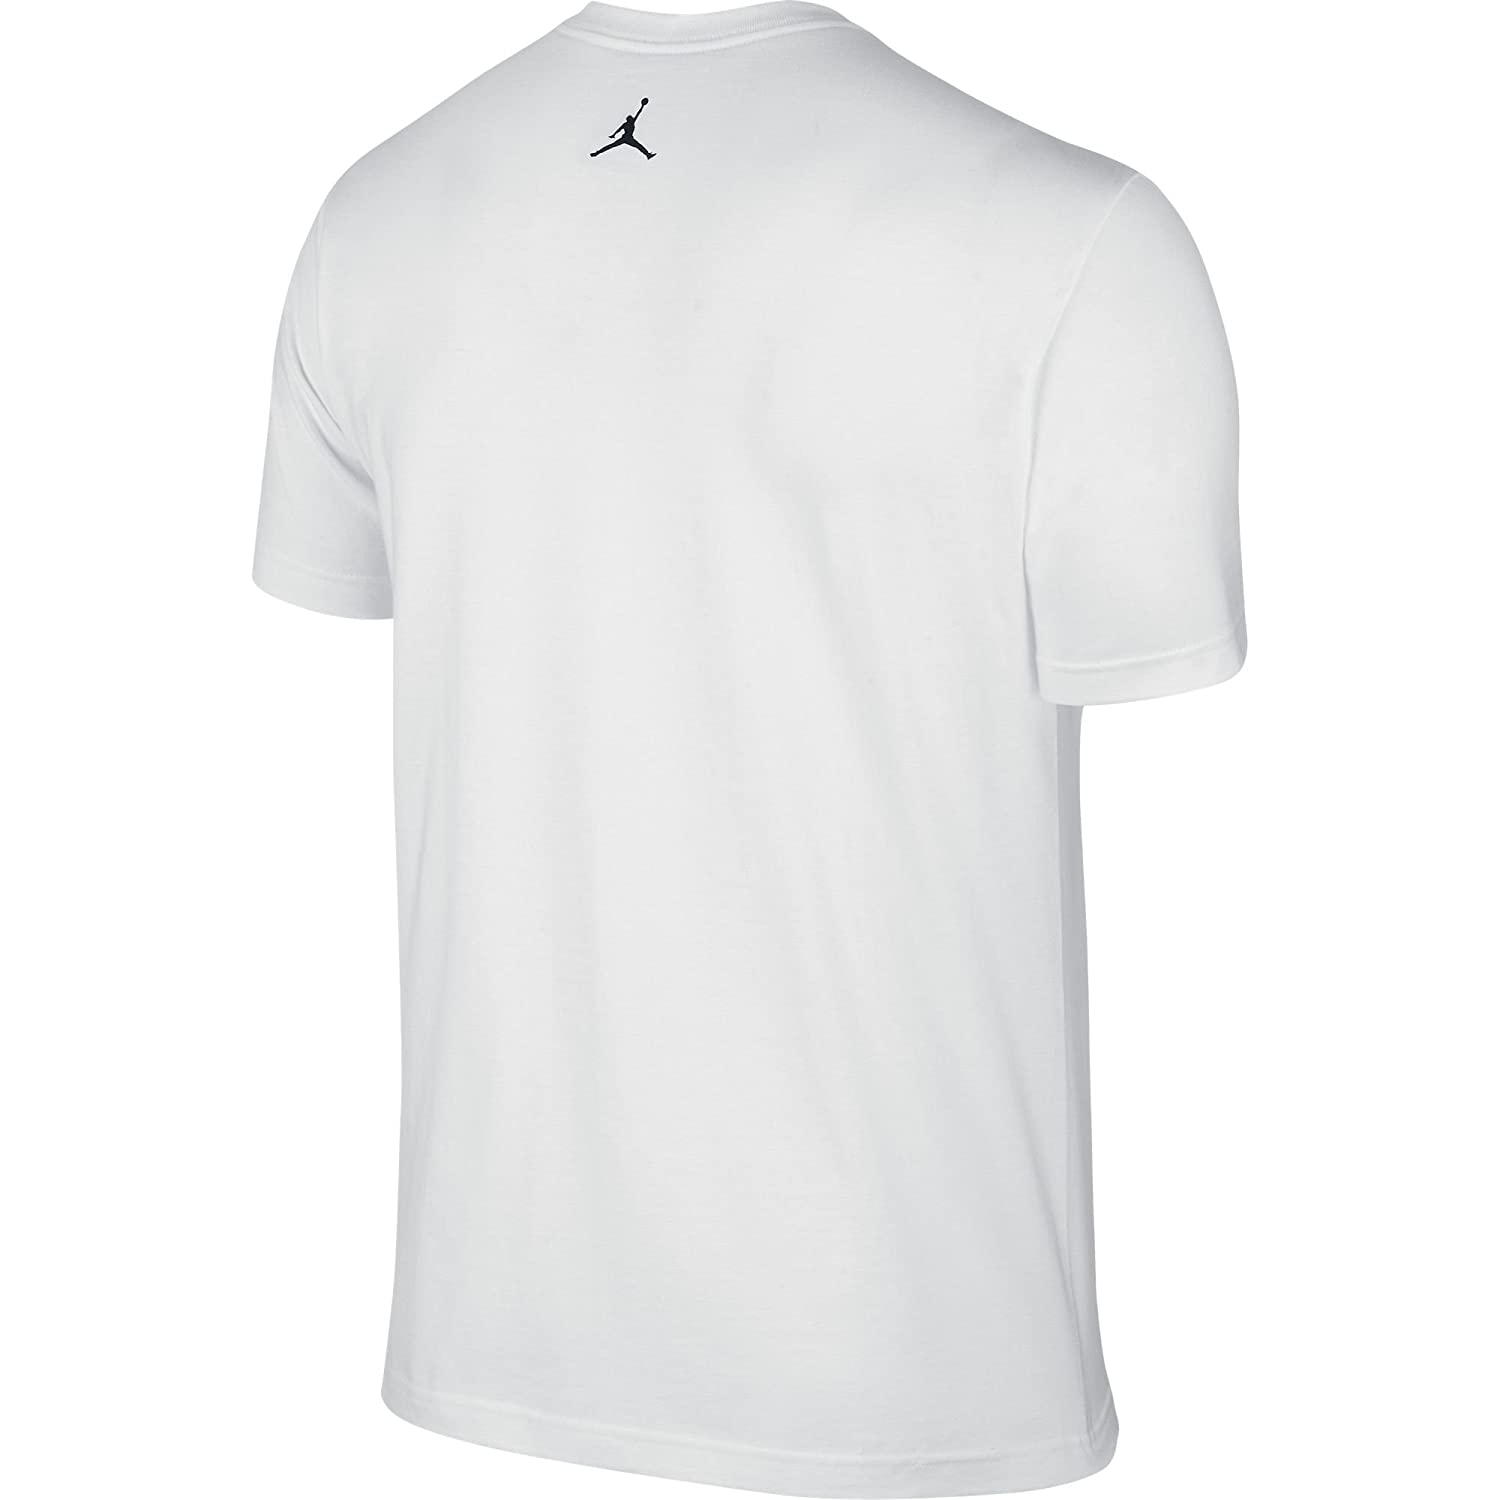 af0379036ab6 Amazon.com  Jordan AJXI Men s T-Shirt White Black 649346-100  Sports    Outdoors